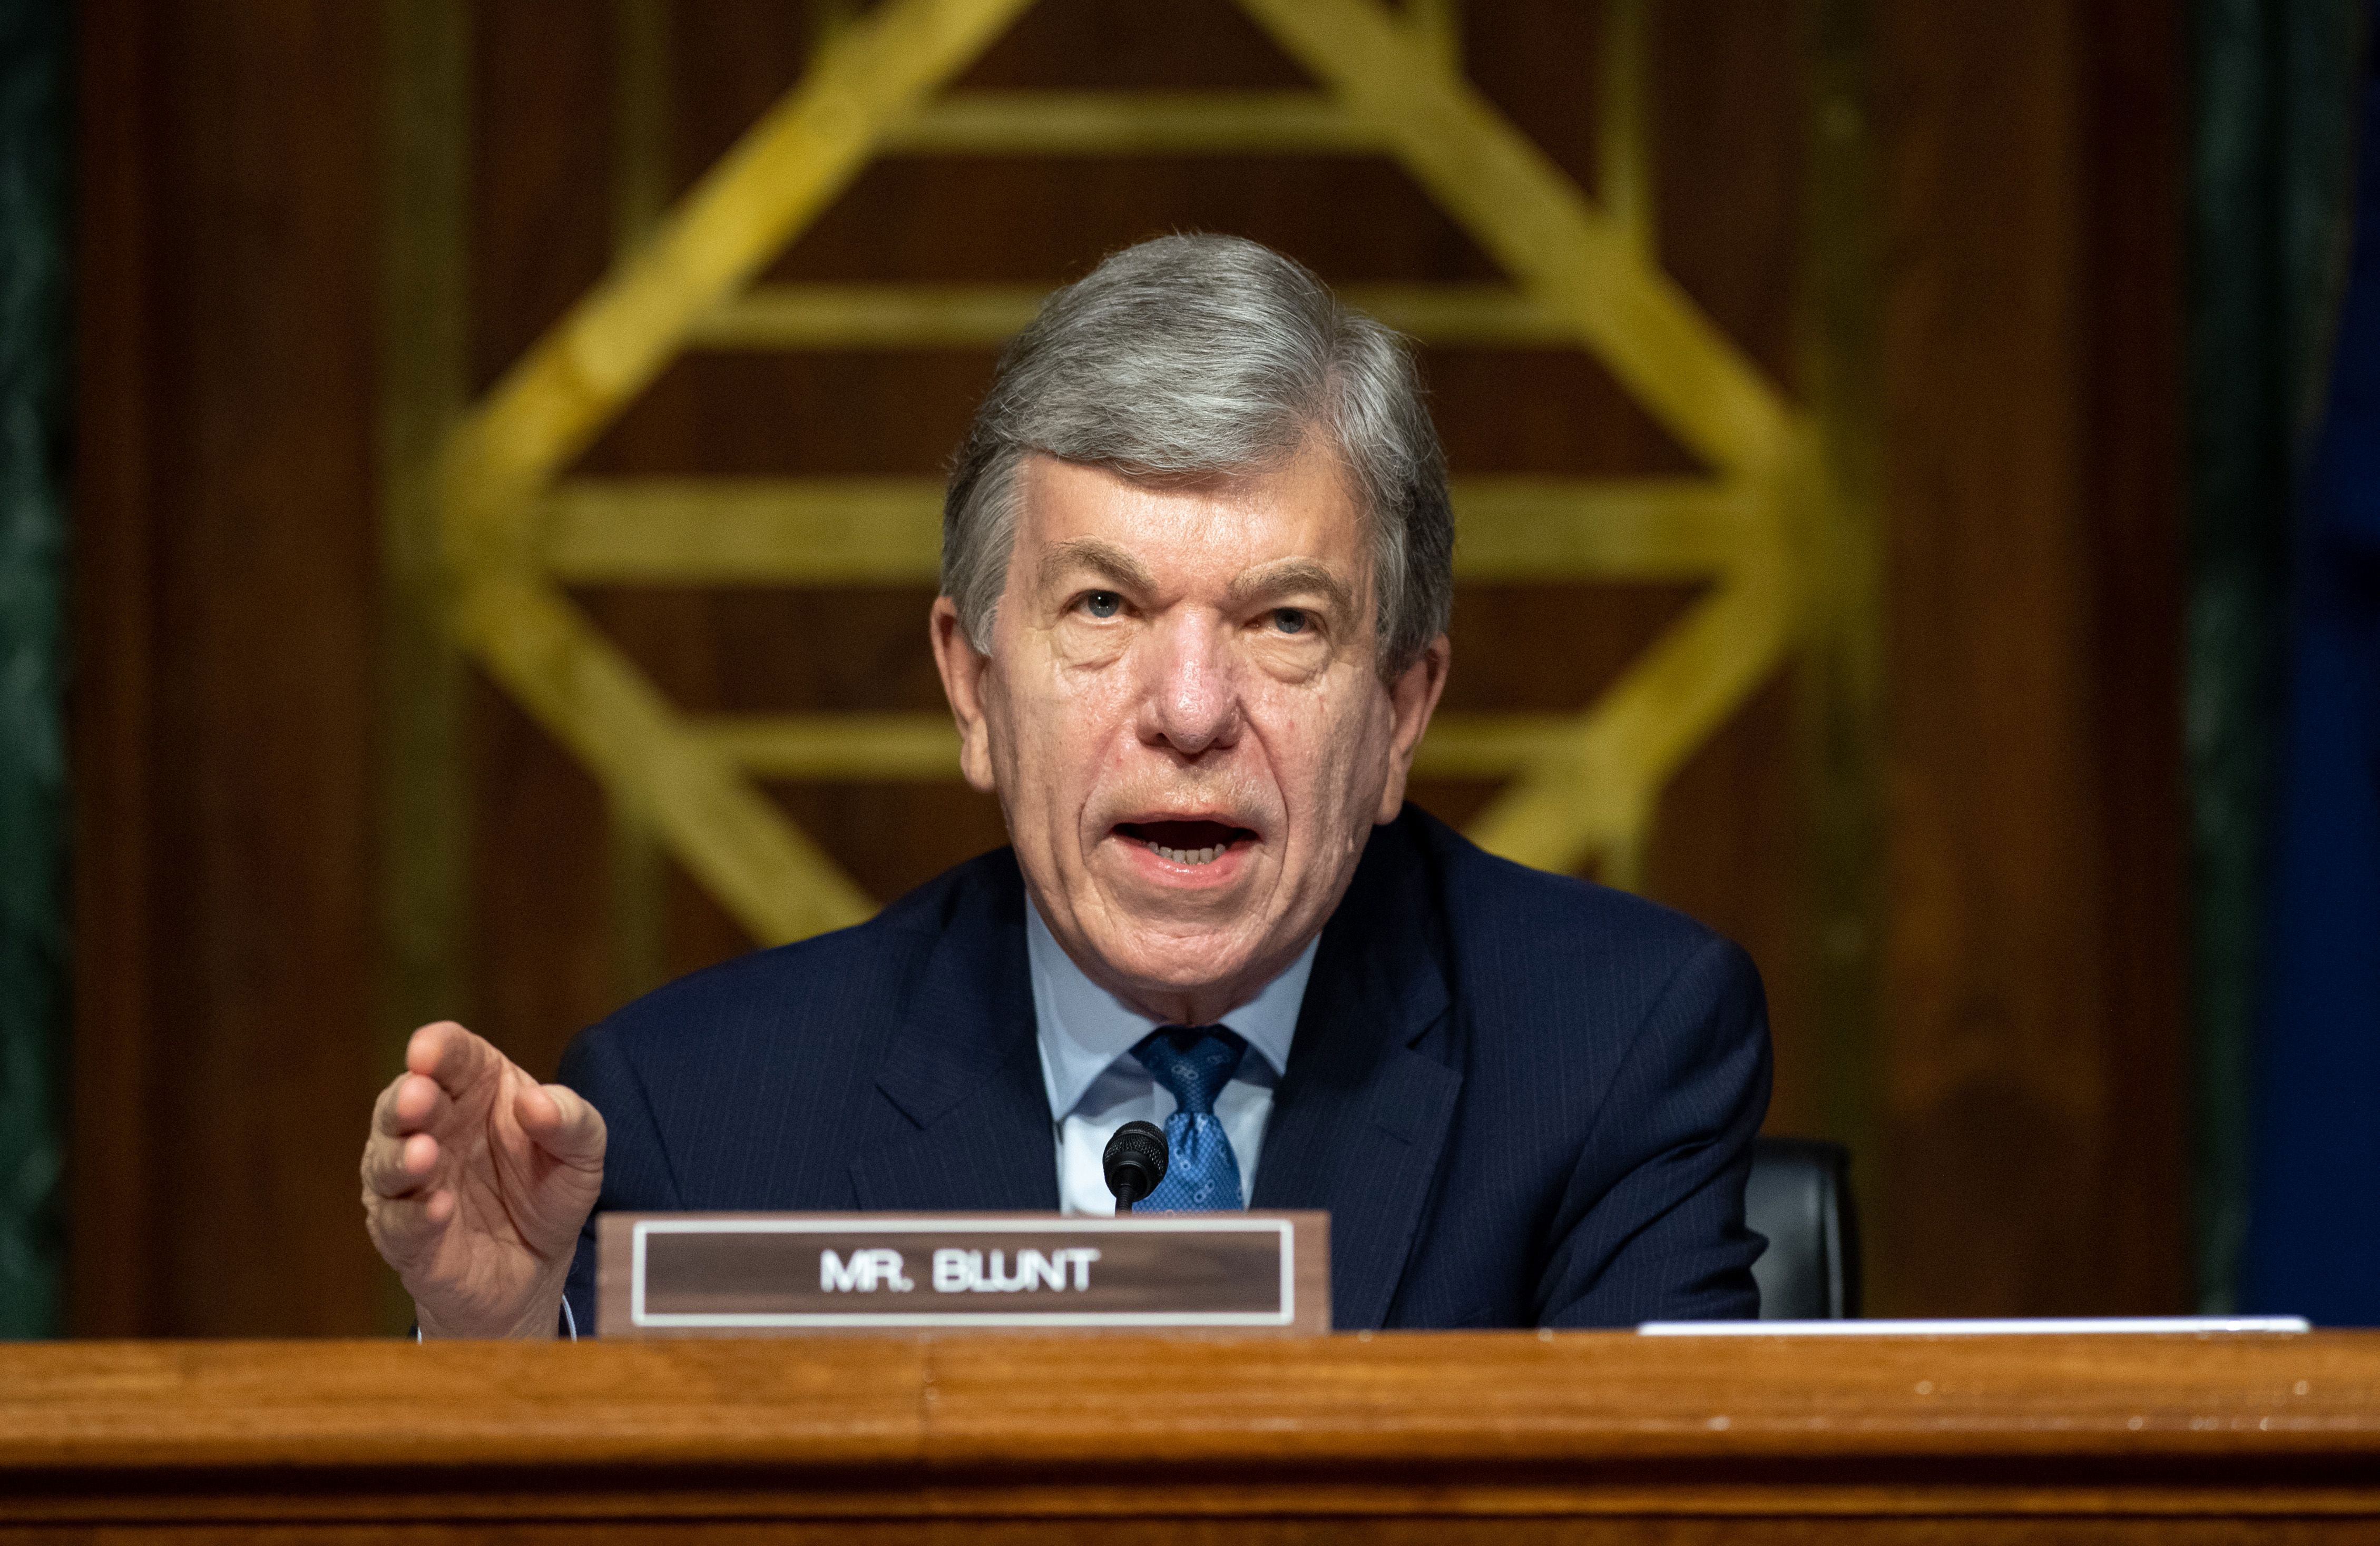 Sen. Roy Blunt speaks during a hearing in Washington, DC, on July 2.